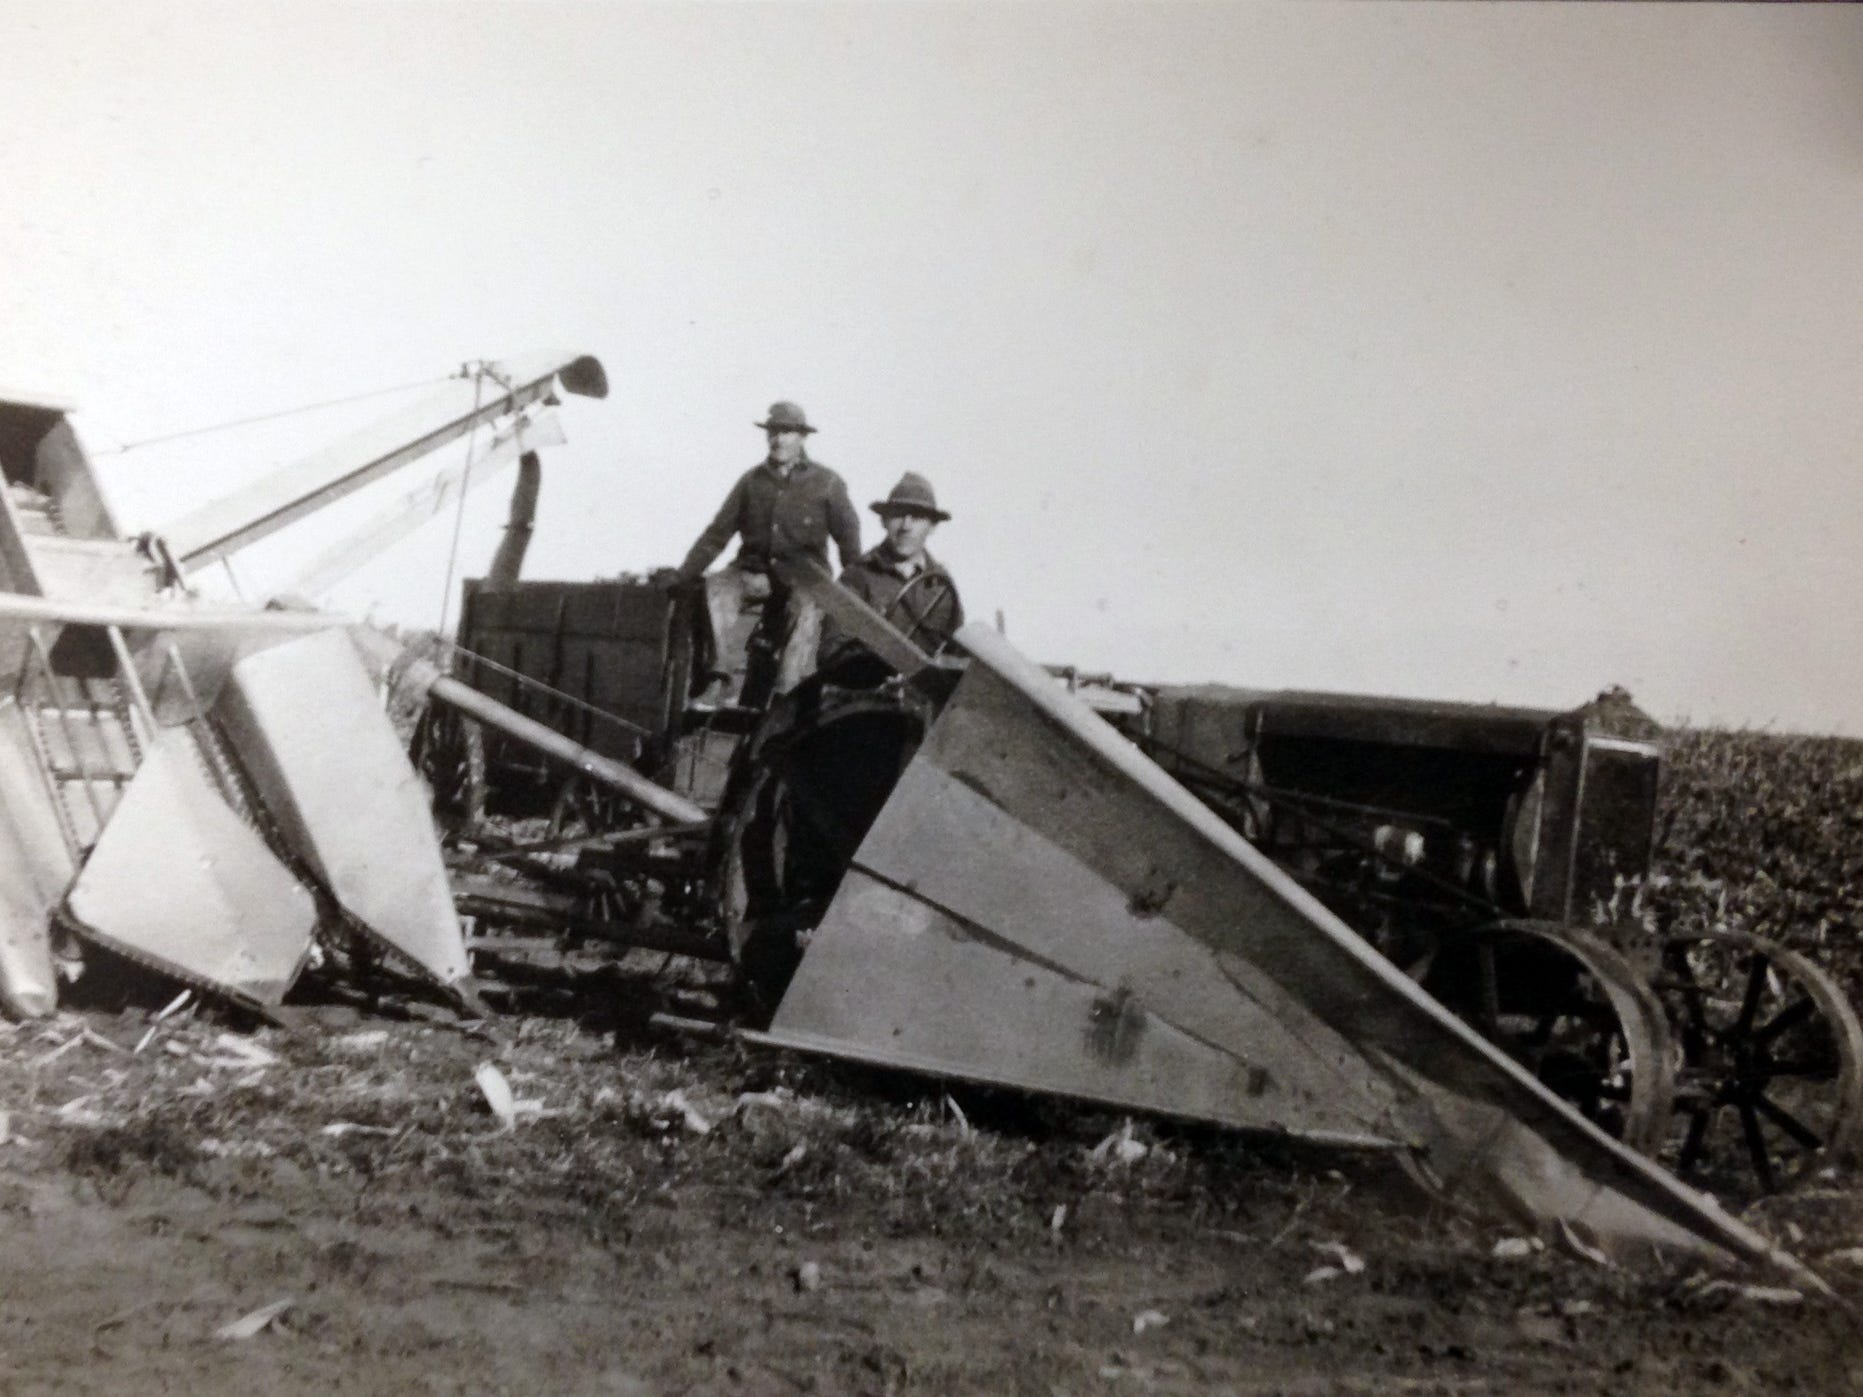 """The book, """"Corn Pickers and the Inventors Who Dreamed Them Up,"""" tells the story of corn pickers, including rare pickers like the Wyde-Tred picker, designed by the inventor of the Wood Brothers corn picker."""